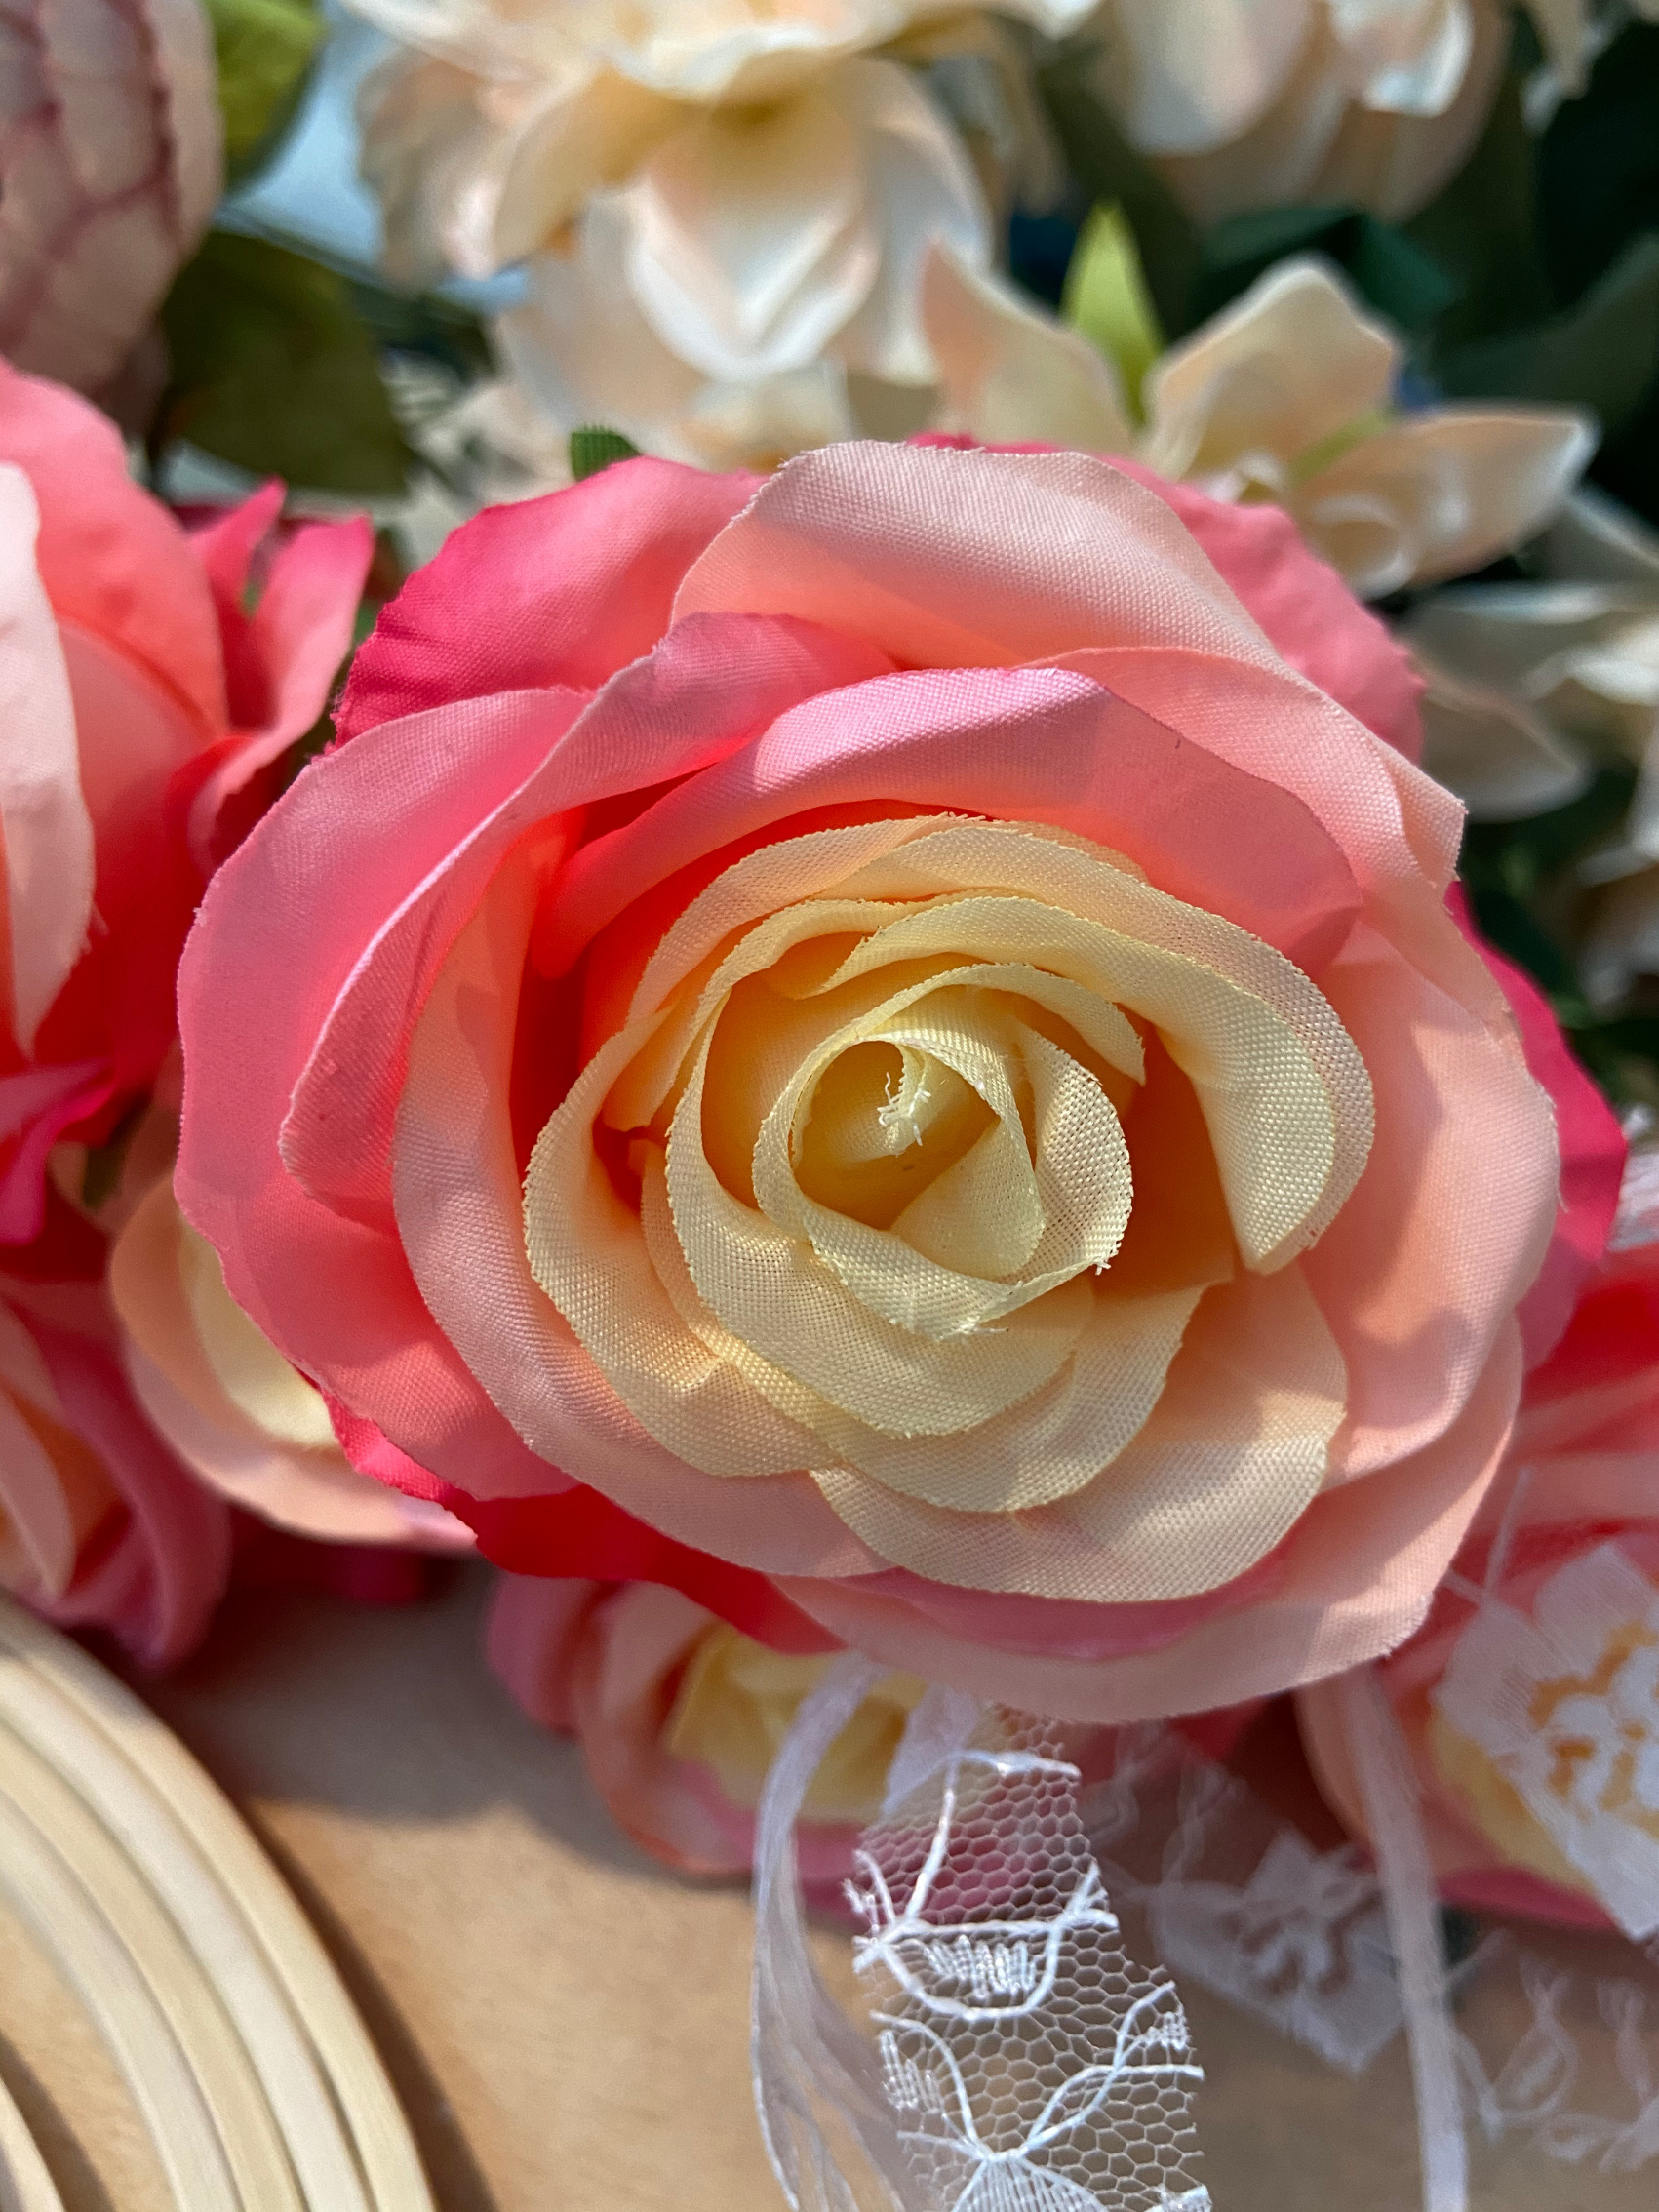 Choose beautiful pink wedding roses for all your wedding flowers, bouquets and decorations.